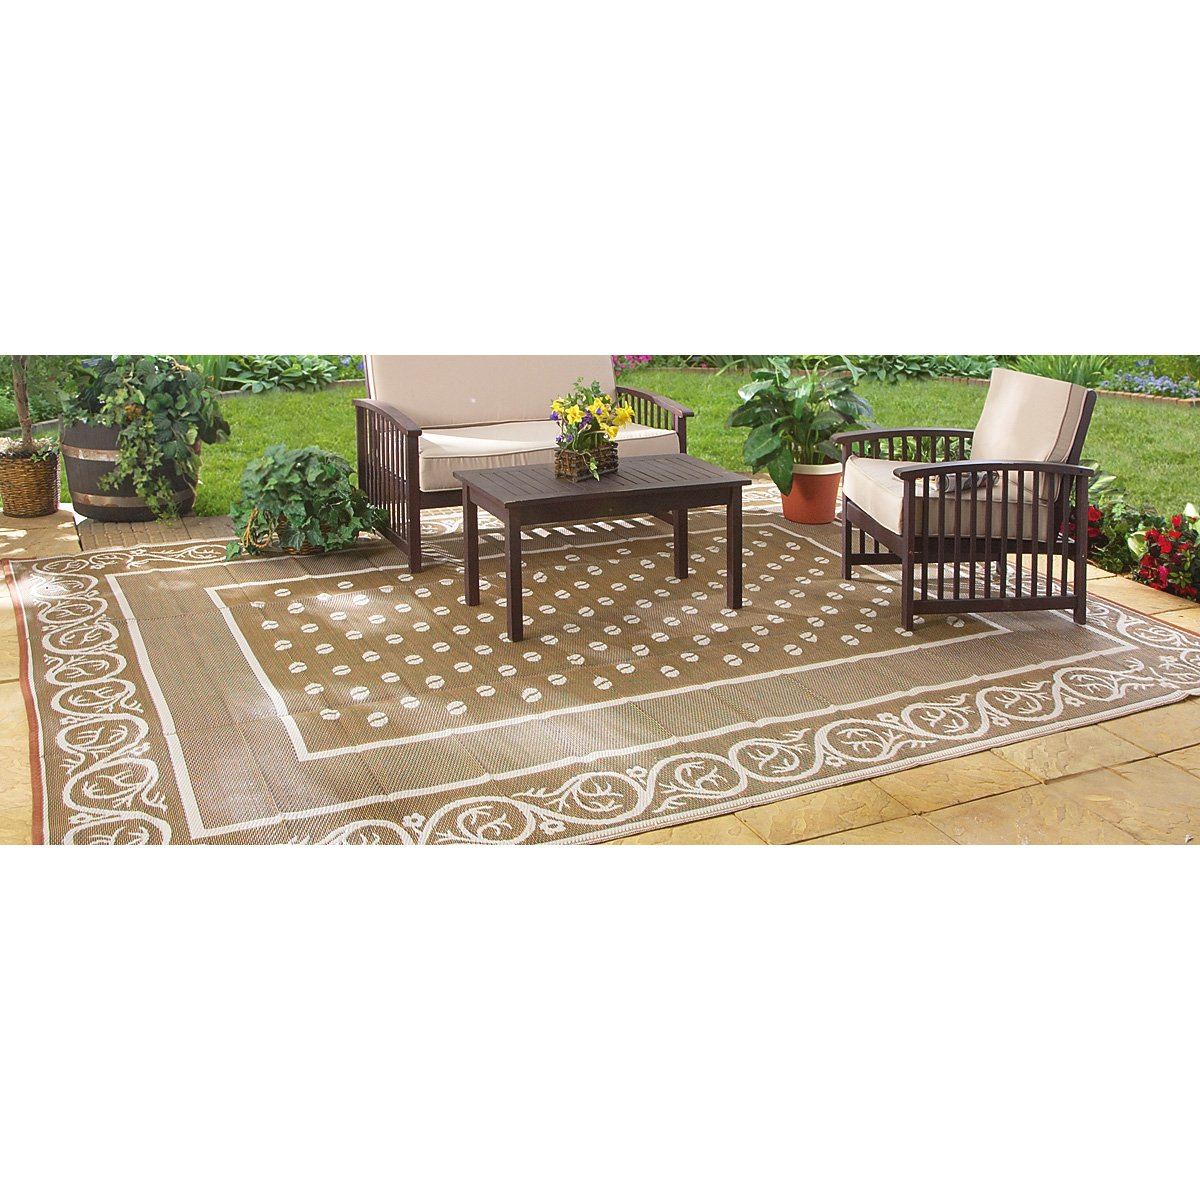 Amazon.com: Guide Gear Reversible 9' x 12' Outdoor Rug Scroll Pattern:  Sports & Outdoors - Amazon.com: Guide Gear Reversible 9' X 12' Outdoor Rug Scroll